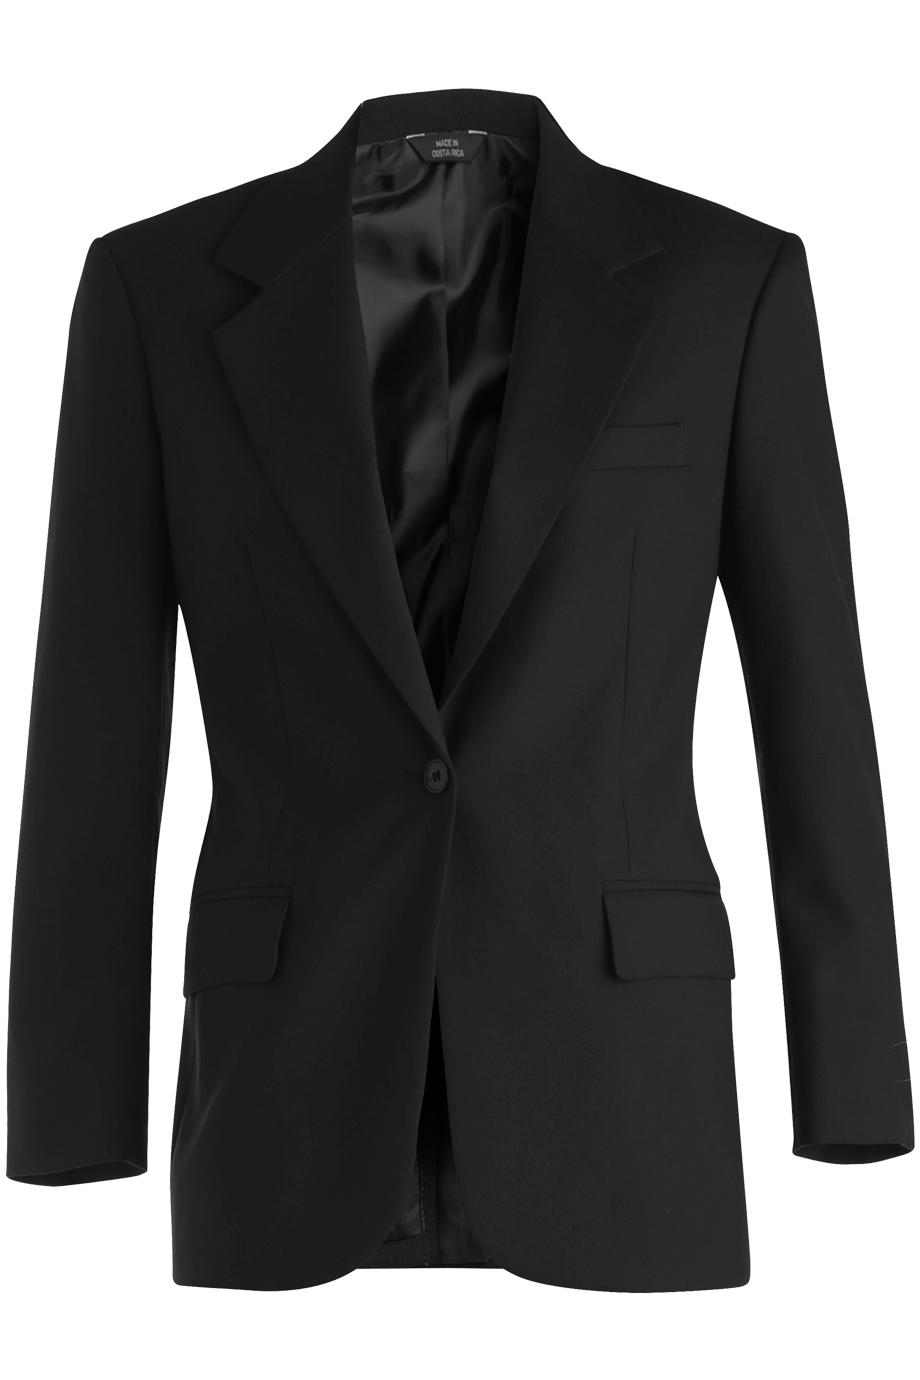 Edwards Ladies Wool Blend Suit Coat-EG